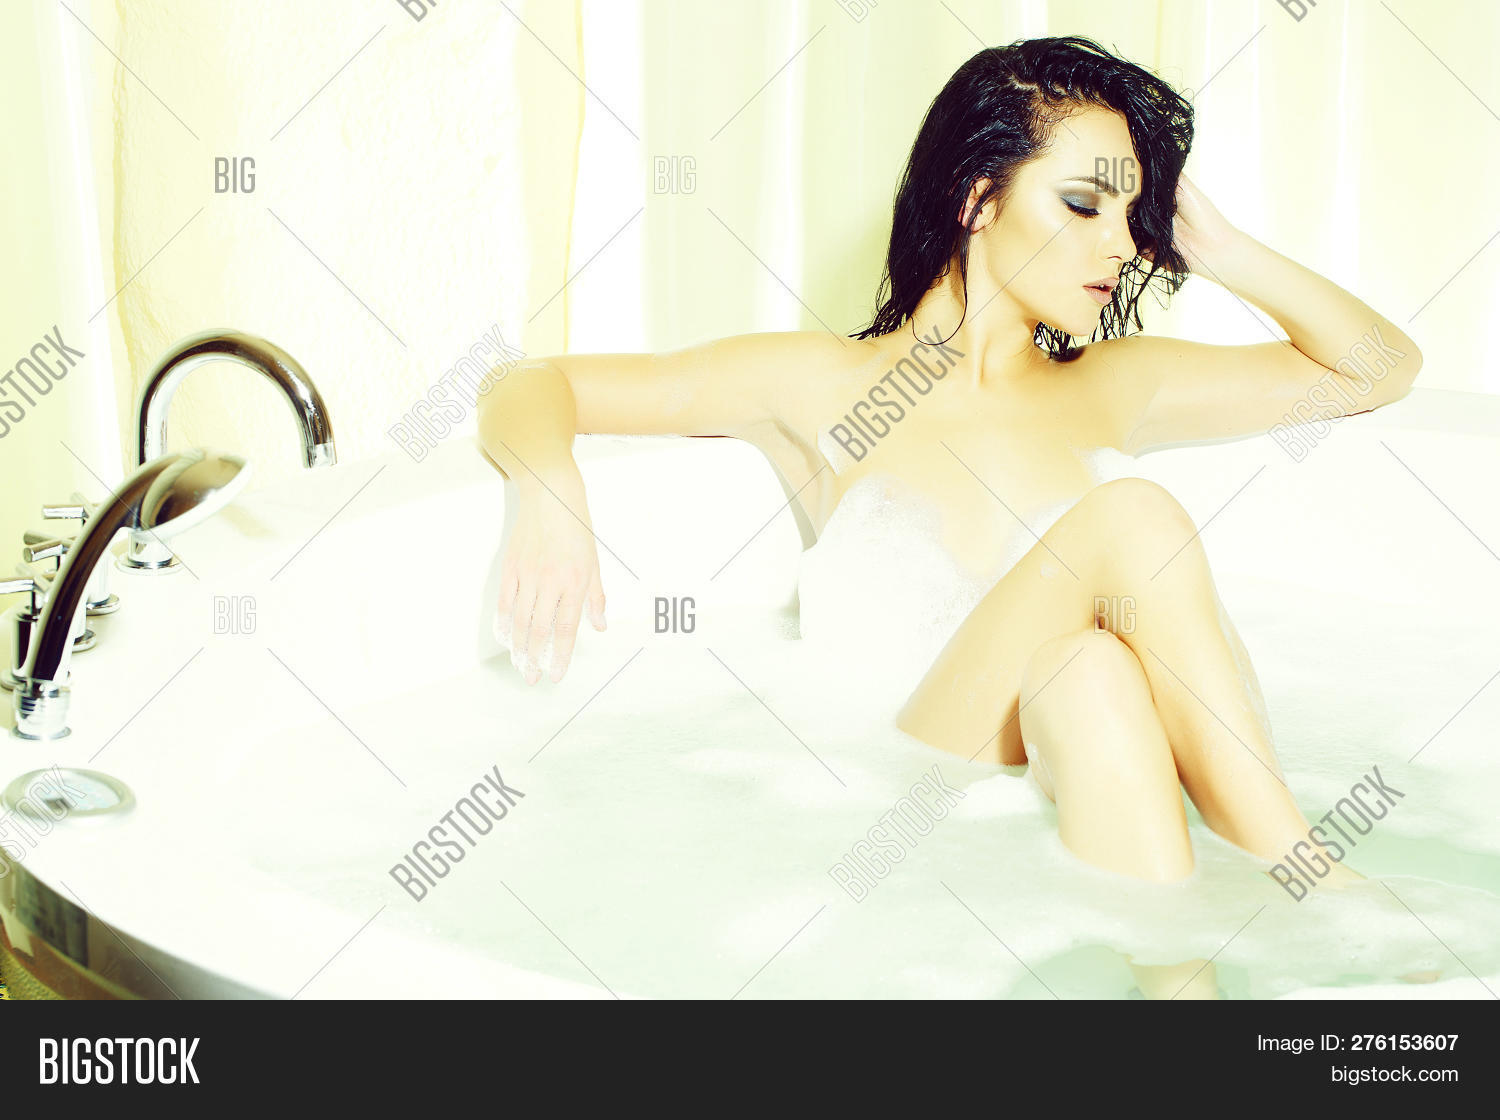 Brunette naked women in the bathtub One Attractive Image Photo Free Trial Bigstock